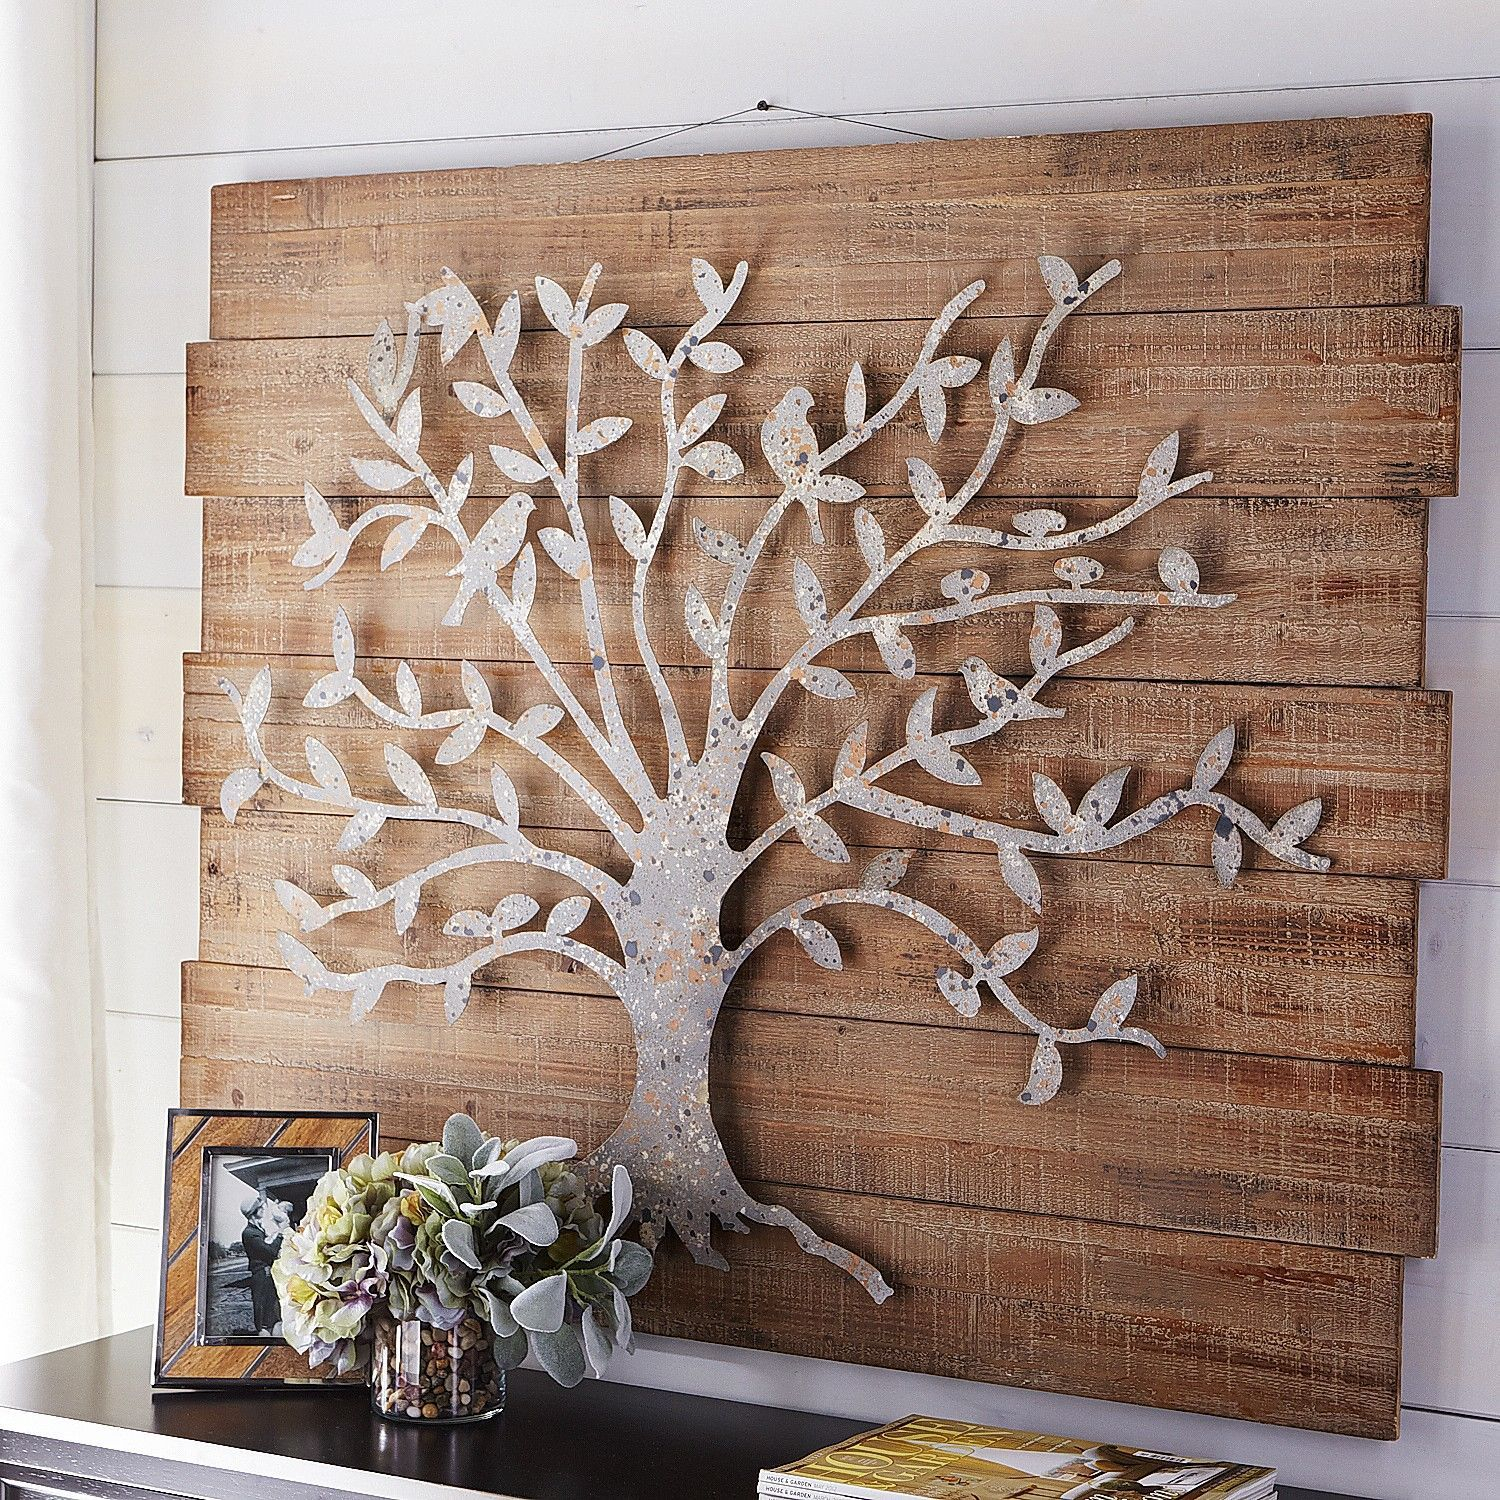 Decoration Ornamental Wall Art Metal Artwork For Living Room Metal For Most Popular Ornamental Wood And Metal Scroll Wall Decor (Gallery 12 of 20)